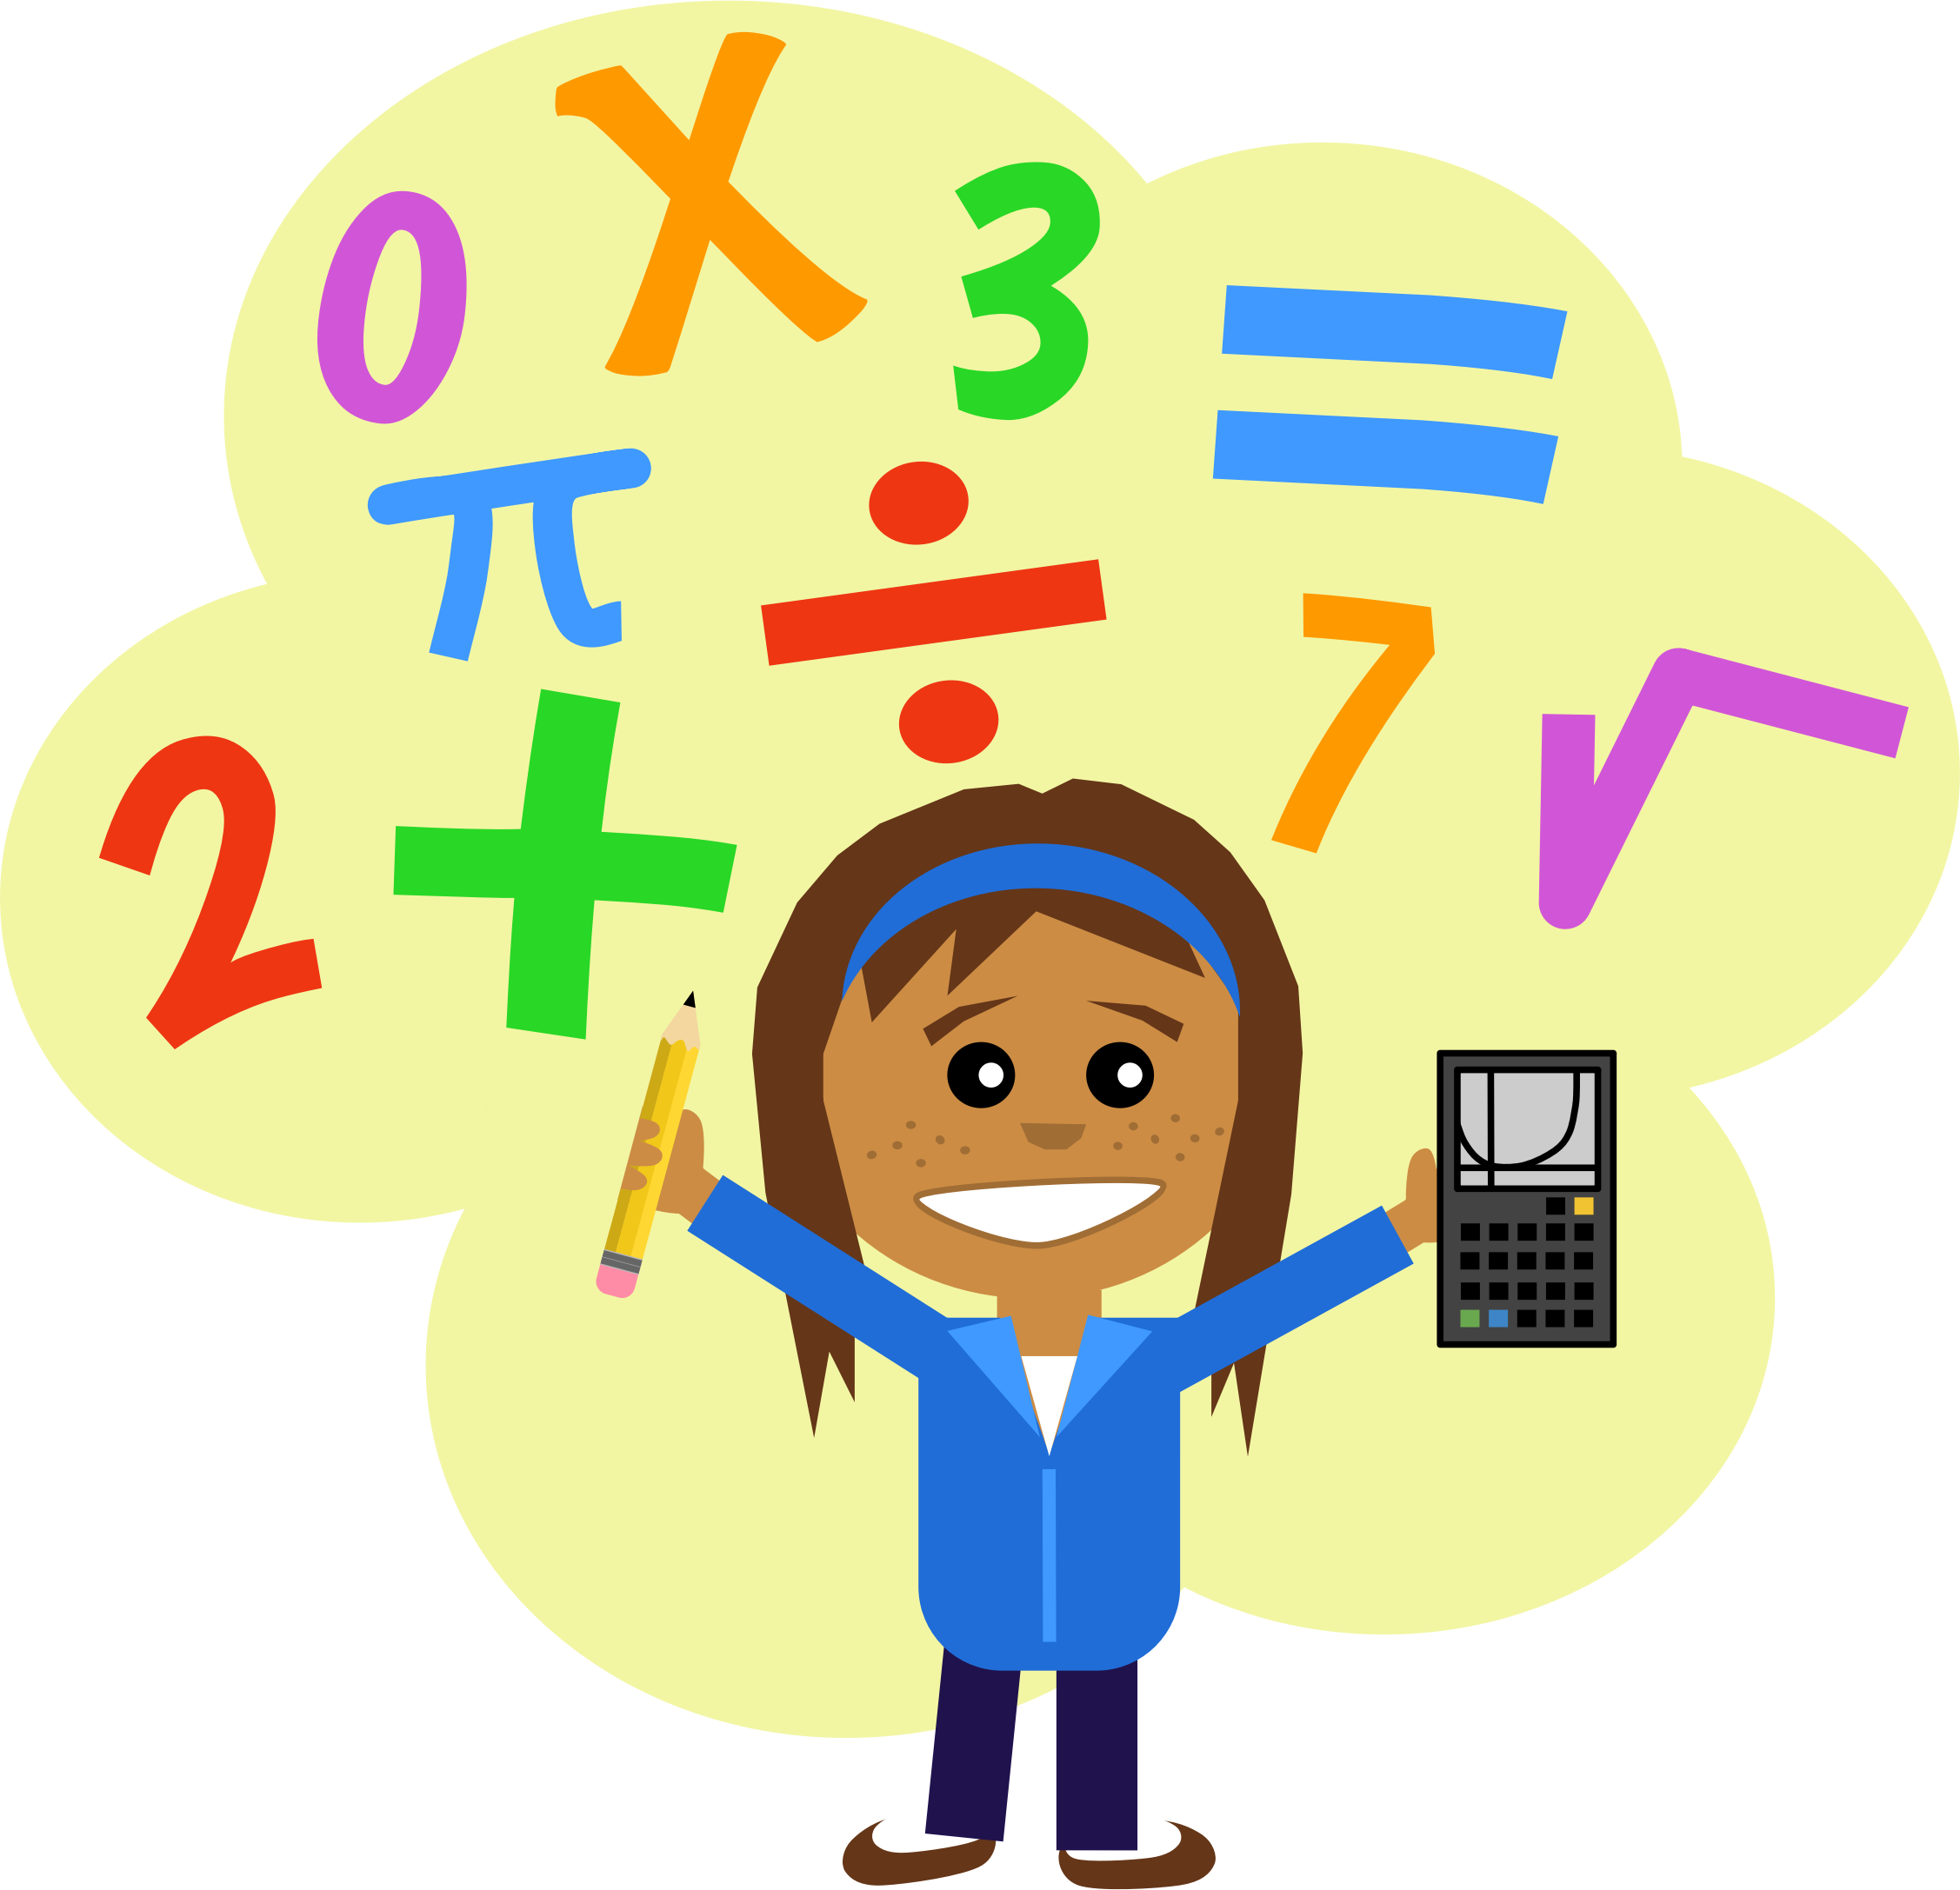 Math Girl By Scout Girl With Pencil And Calculator In A Cloud Of Math Symbols Drawn In Comic Style On O Math Clipart Project Based Learning Teaching Math